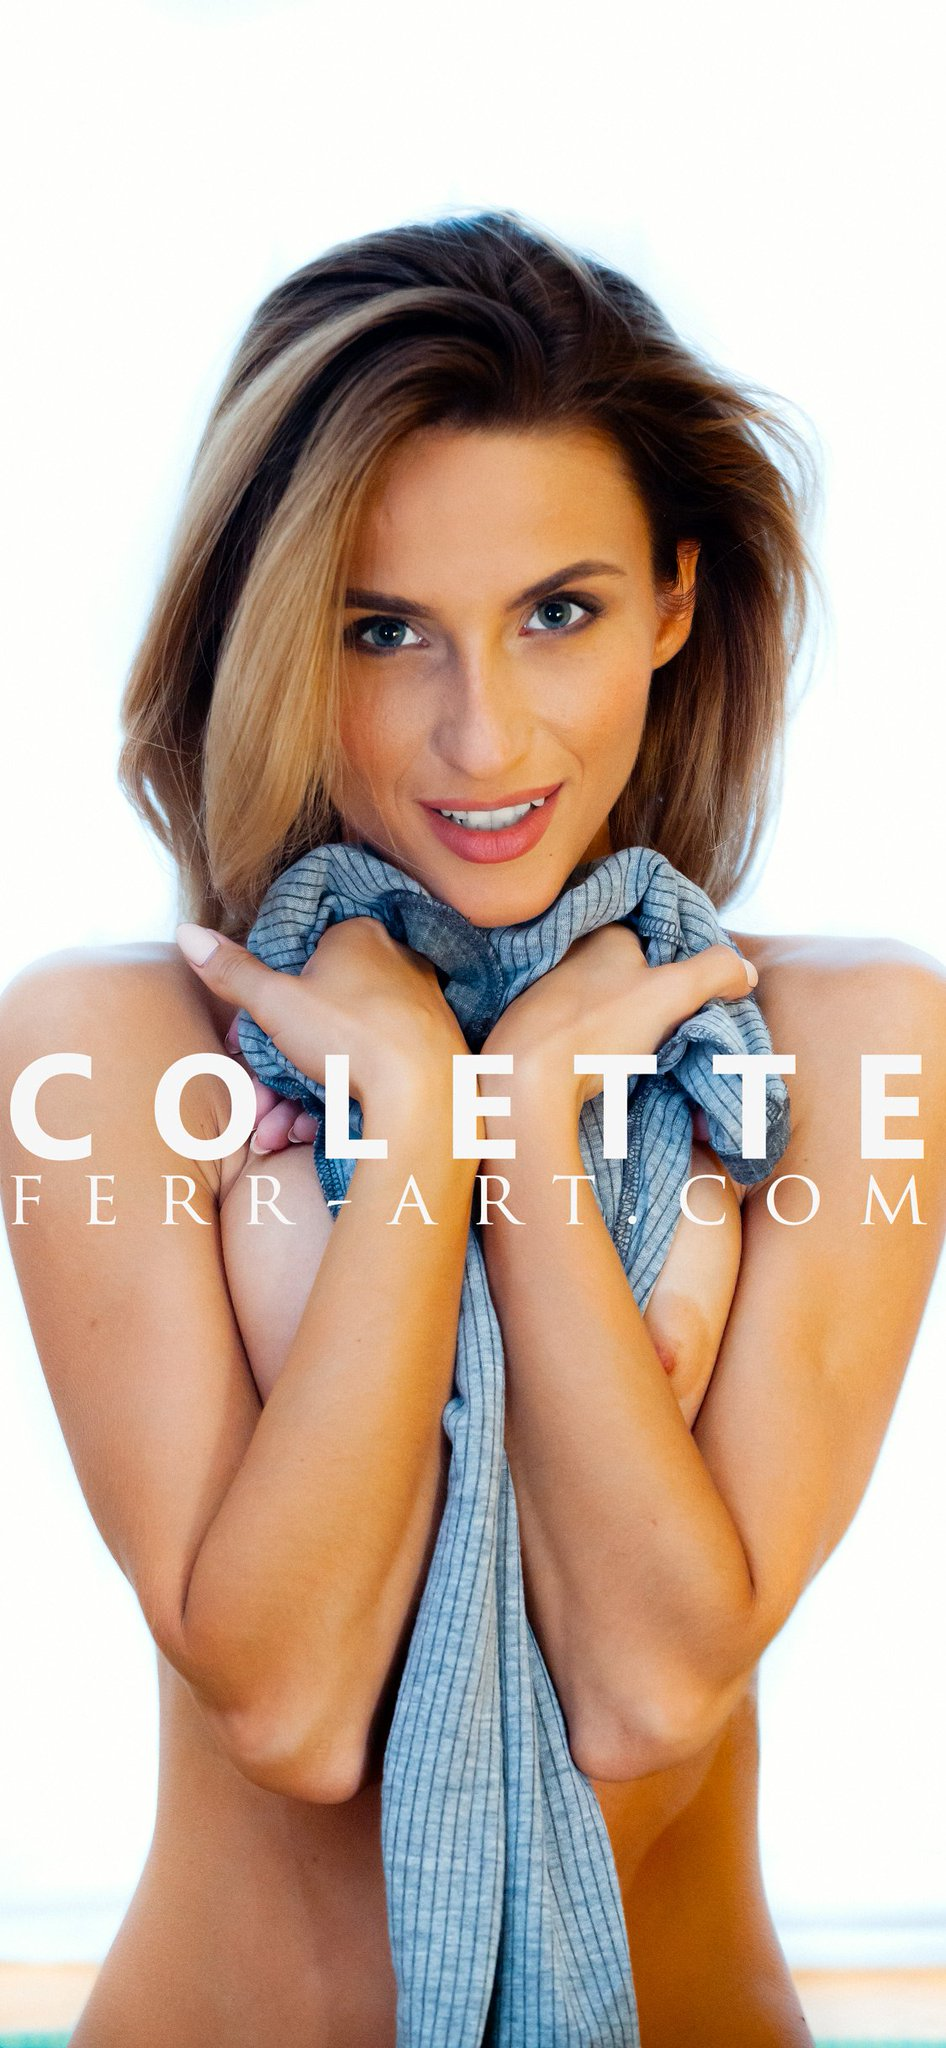 Ferr Art Com On Twitter Get Your Monthly Wall Paper August With Colette Https T Co B3j2pykoc4